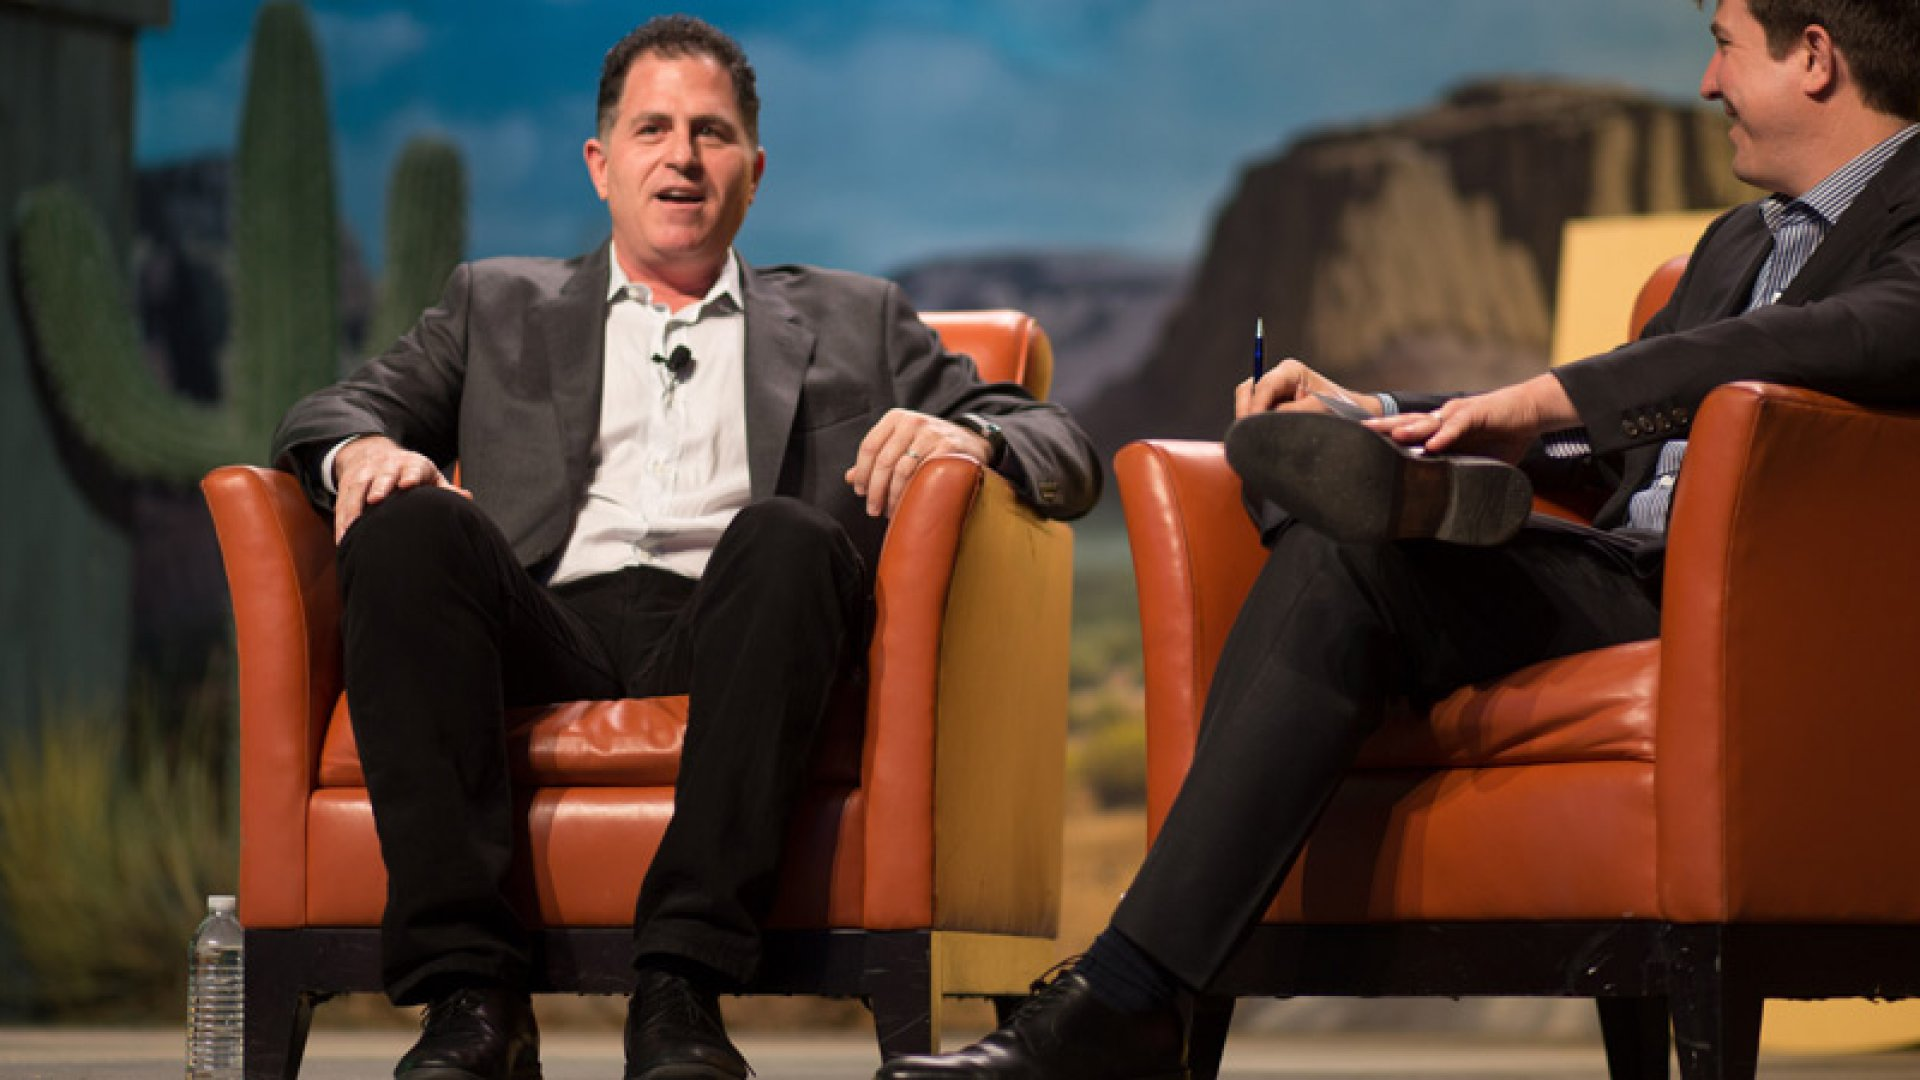 Michael Dell on Carl Icahn, Hewlett Packard, and the Entrepreneurs He Most Admires